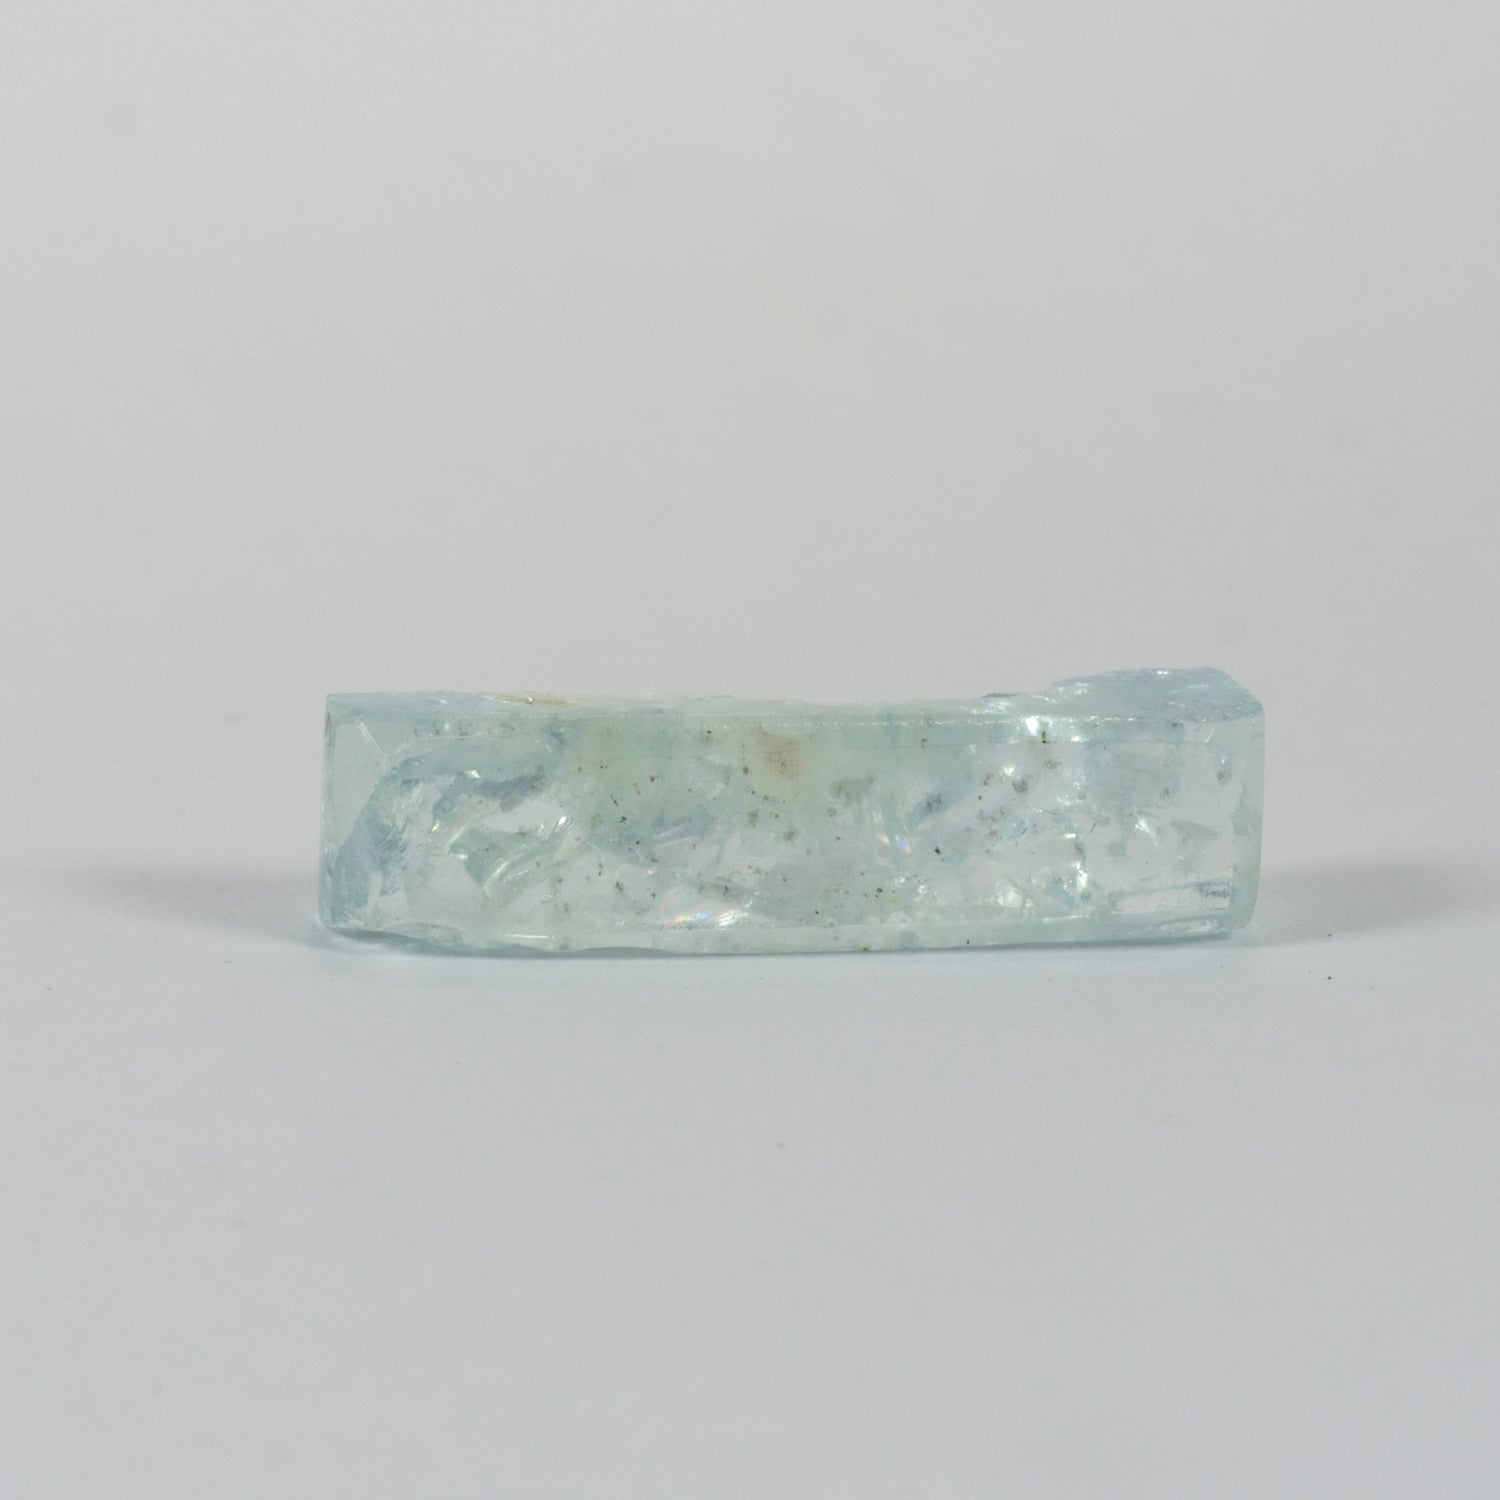 11.46ct Bespoke Rectangular Rough Cut Aquamarine, beautiful aquamarine gemstone in pale sea green, bespoke cutting, responsible sourcing in Mozambique